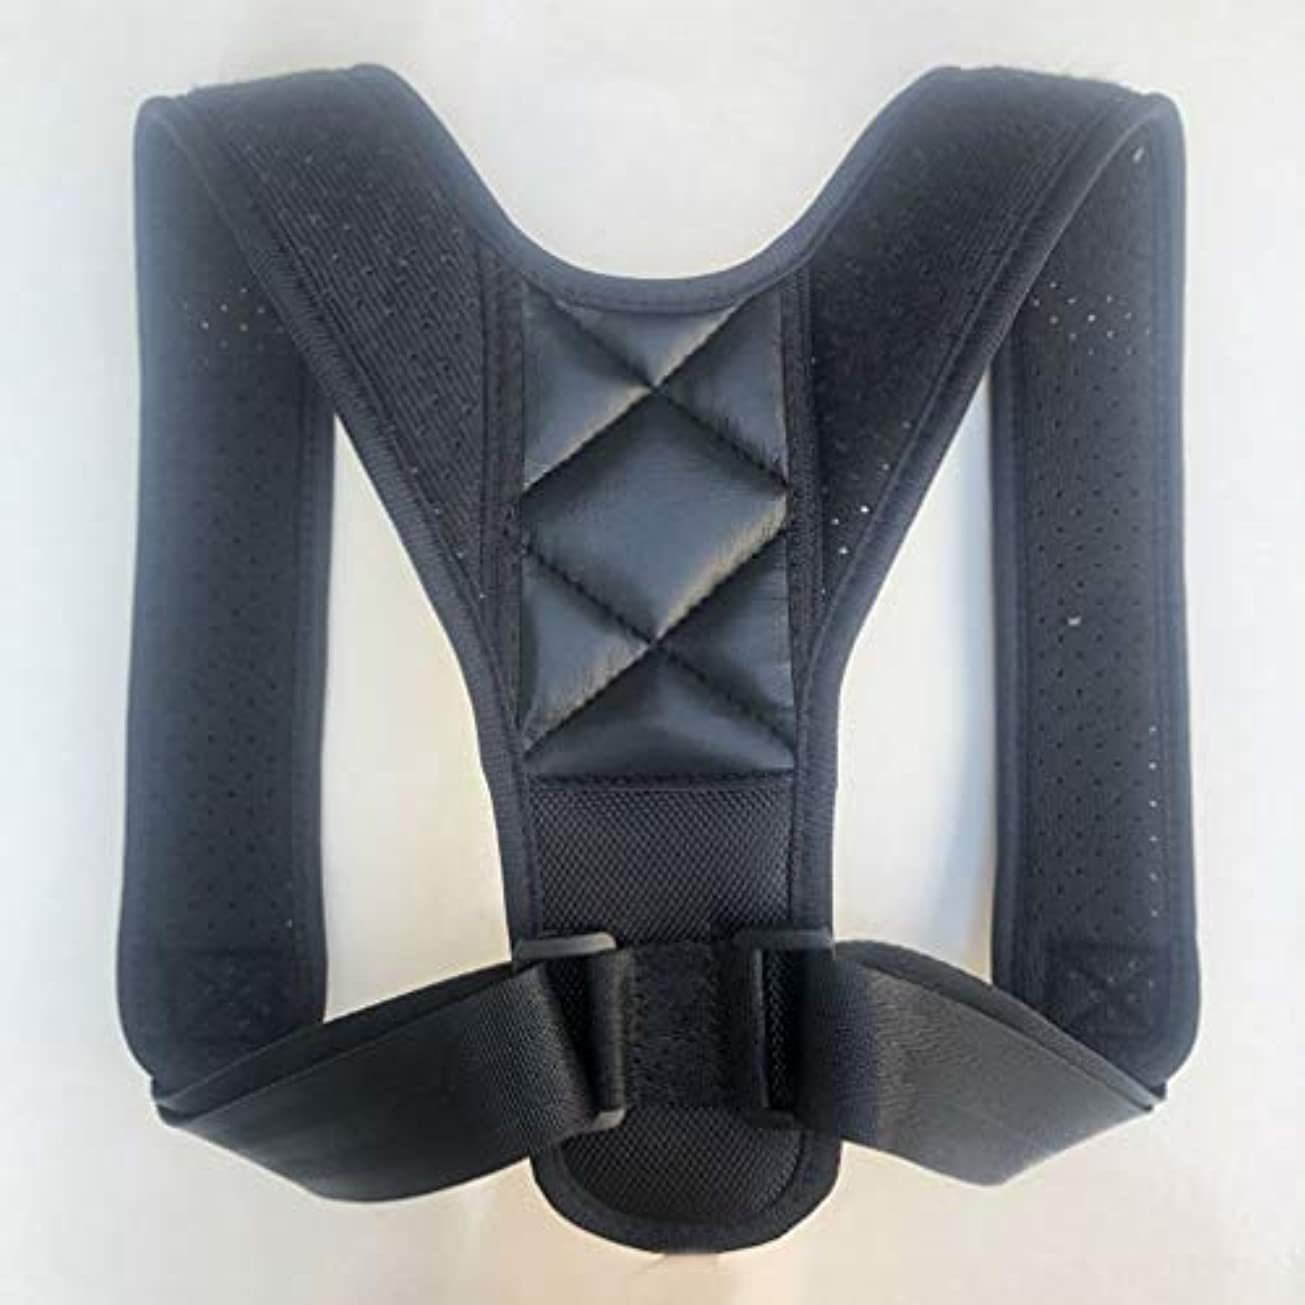 本気年キウイUpper Back Posture Corrector Posture Clavicle Support Corrector Back Straight Shoulders Brace Strap Corrector